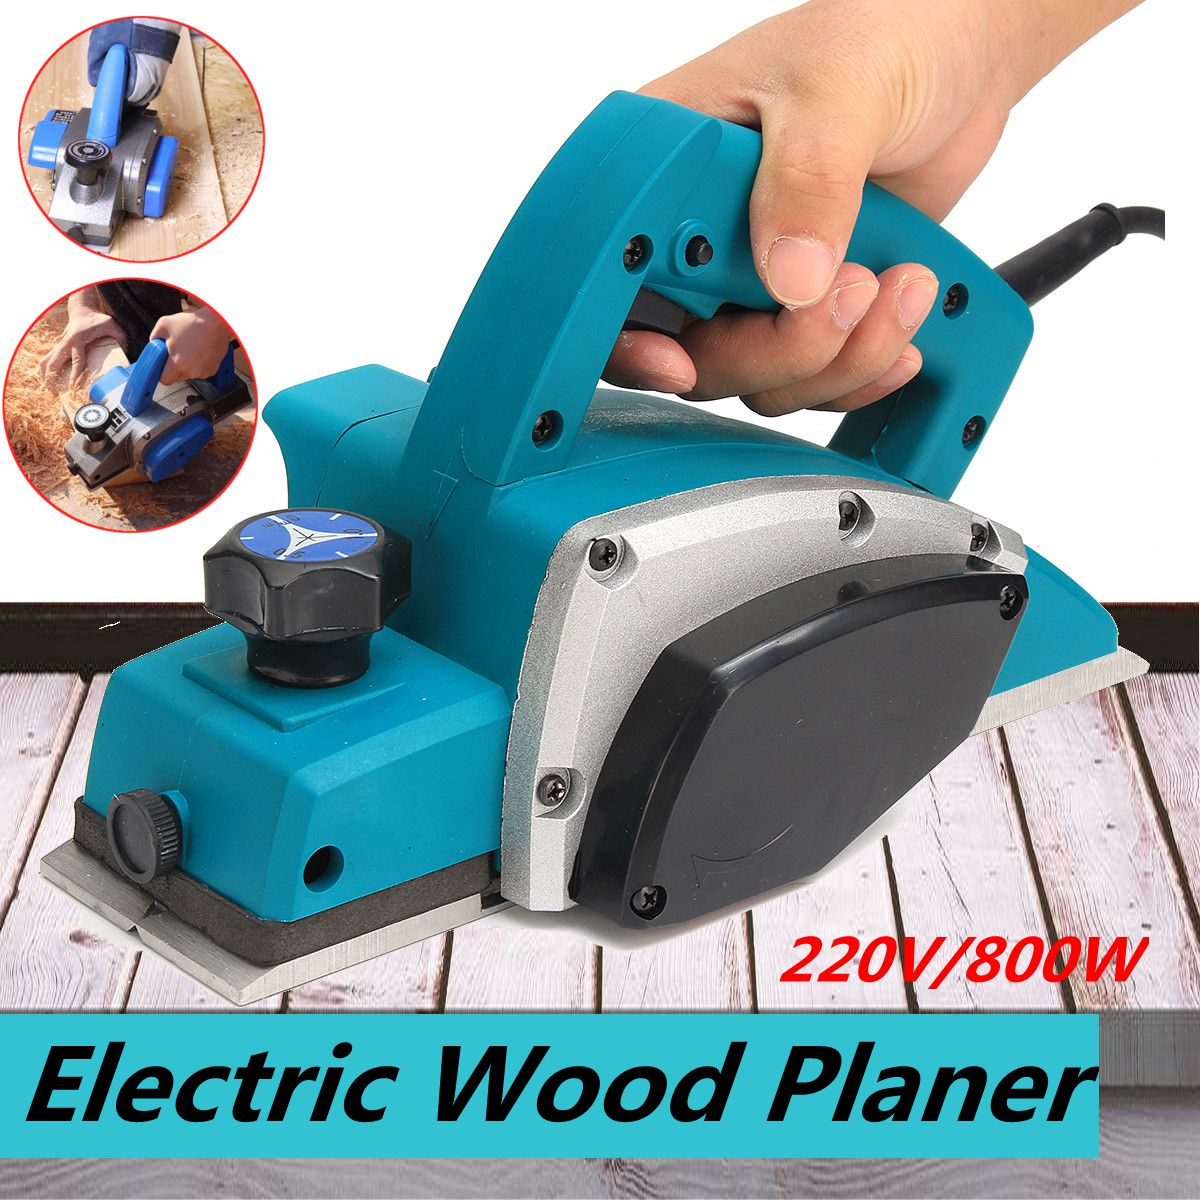 Powerful Electric Wood Planer Door Plane Hand Held Heavy   220V 800W Woodworking Power Tool Surface For Wood Processing